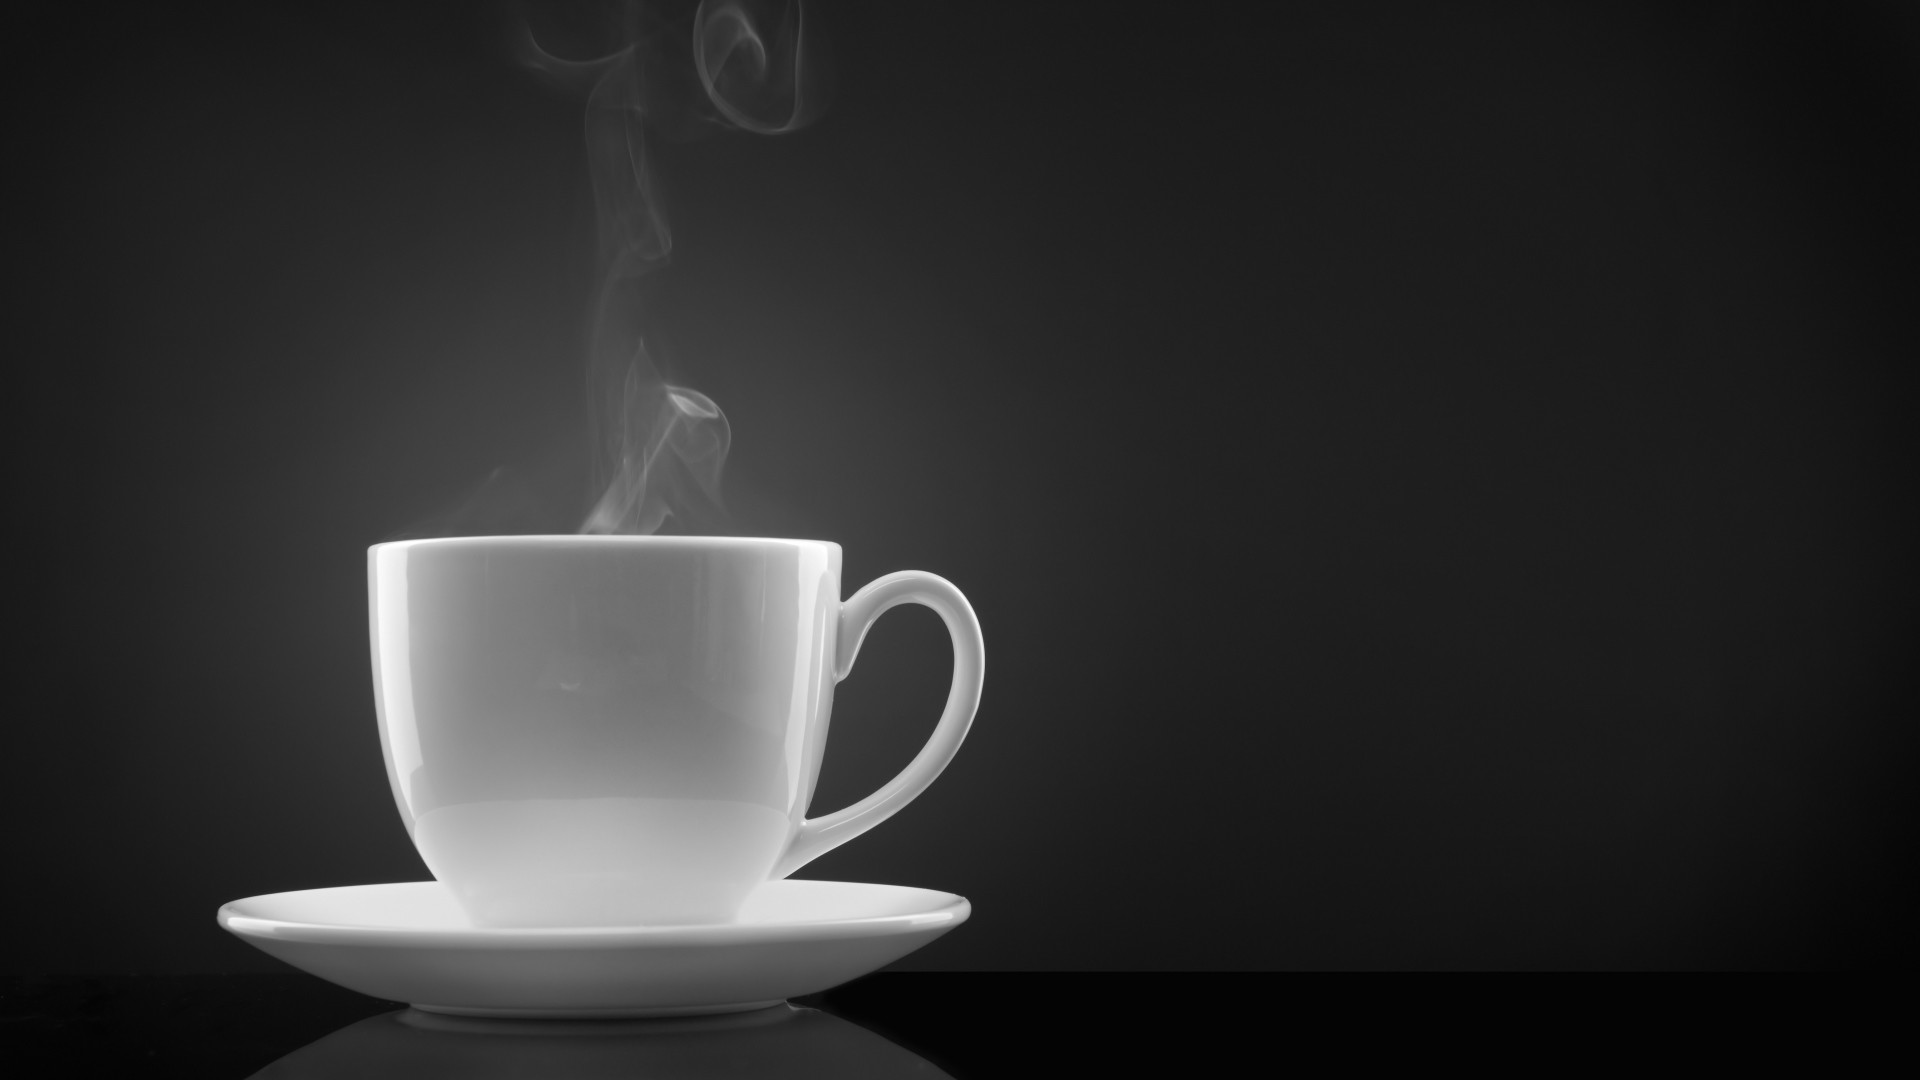 Wallpaper coffee, steam, cup, black background